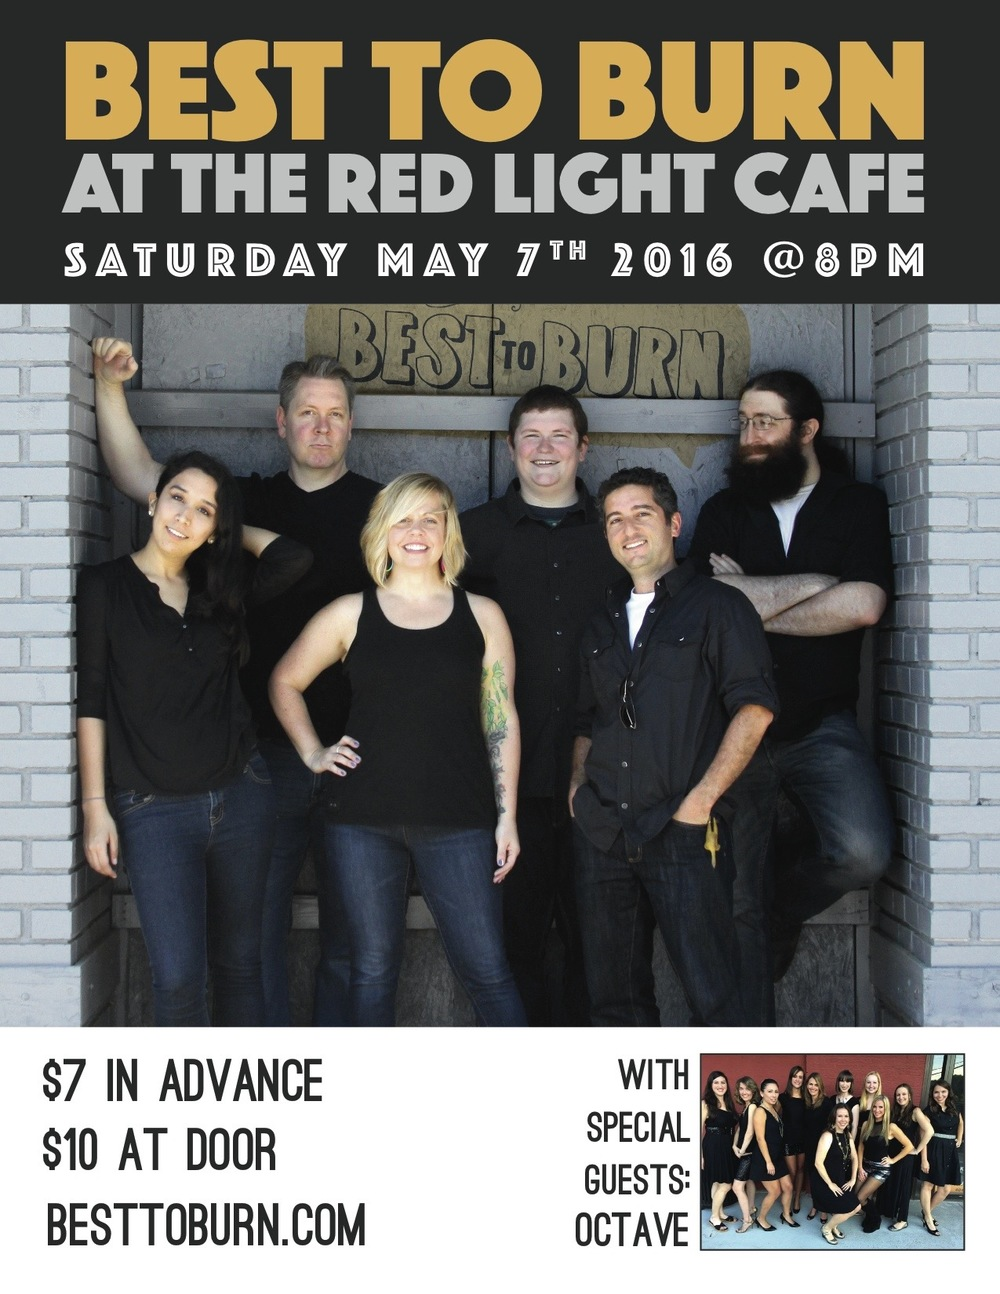 Best to Burn w/ Octave: An Evening of A Cappella — May 7, 2016 — Red Light Café, Atlanta, GA